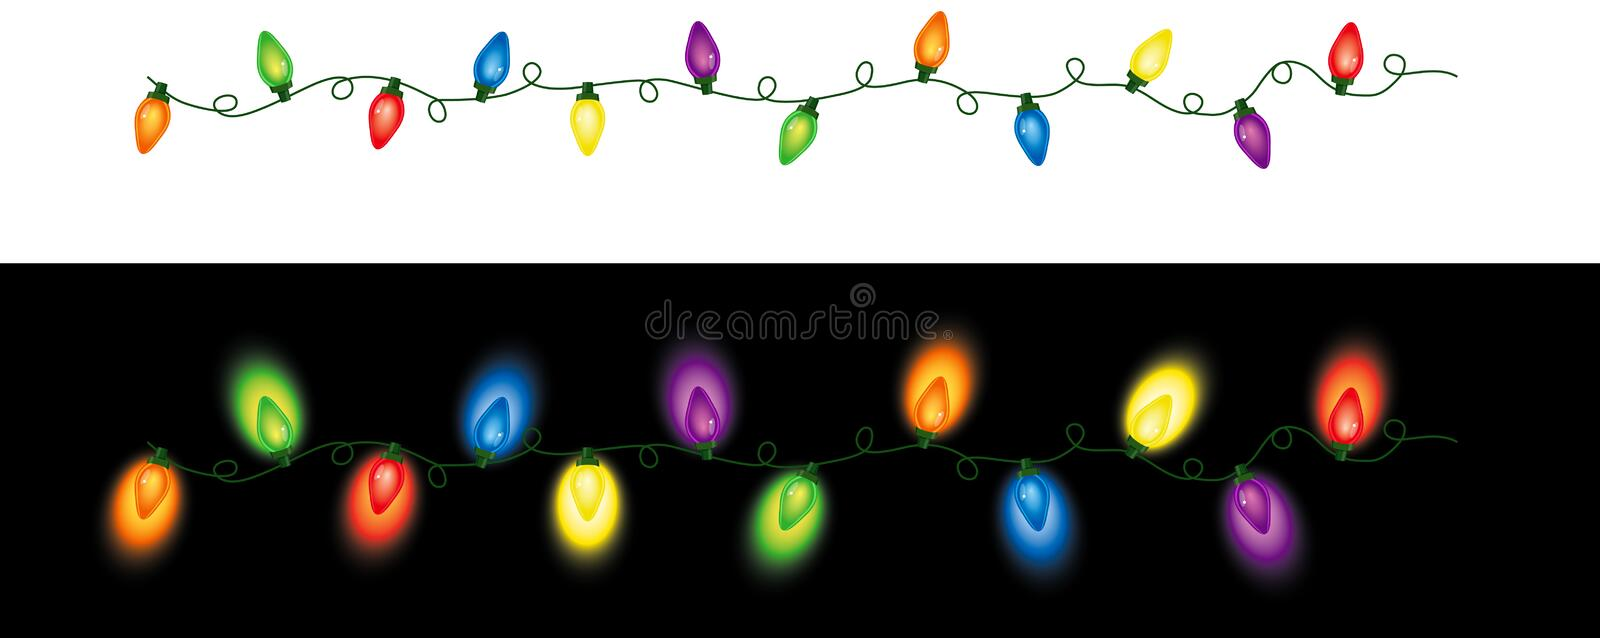 Colored Christmas Lights Repeating Stock Photos - Image: 34146533